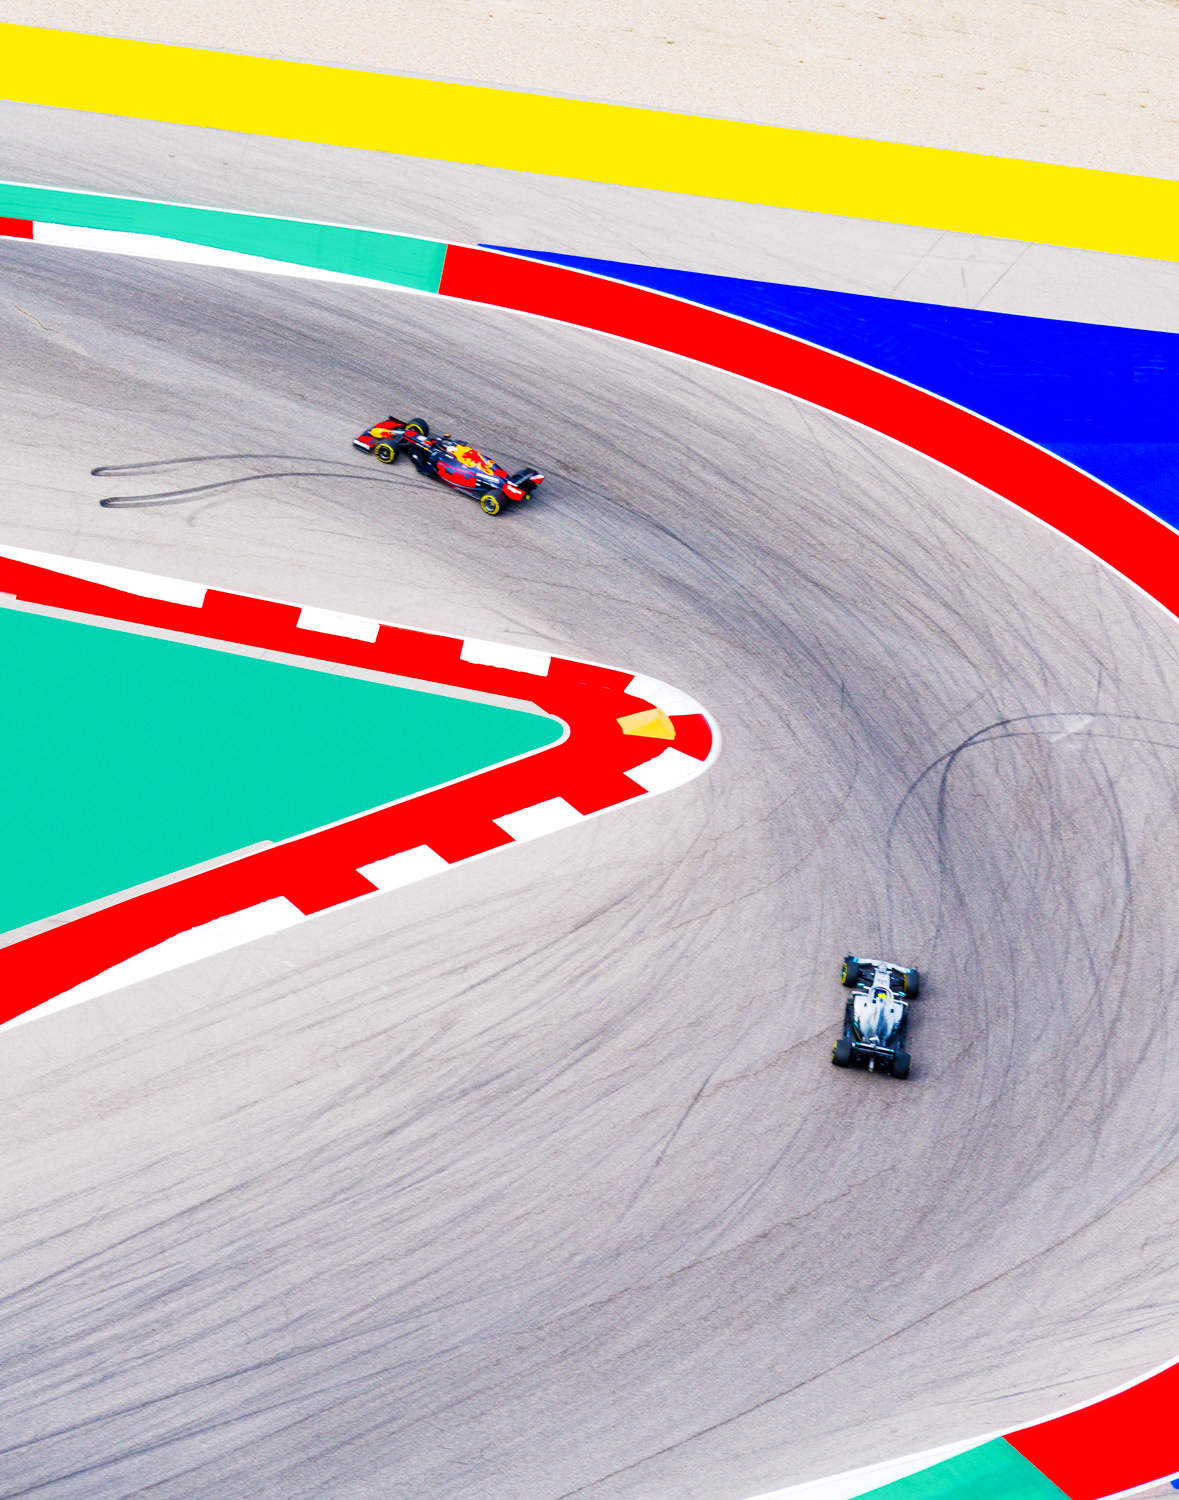 'Curves', Formula 1, Circuit Of the Americas, Austin, Texas